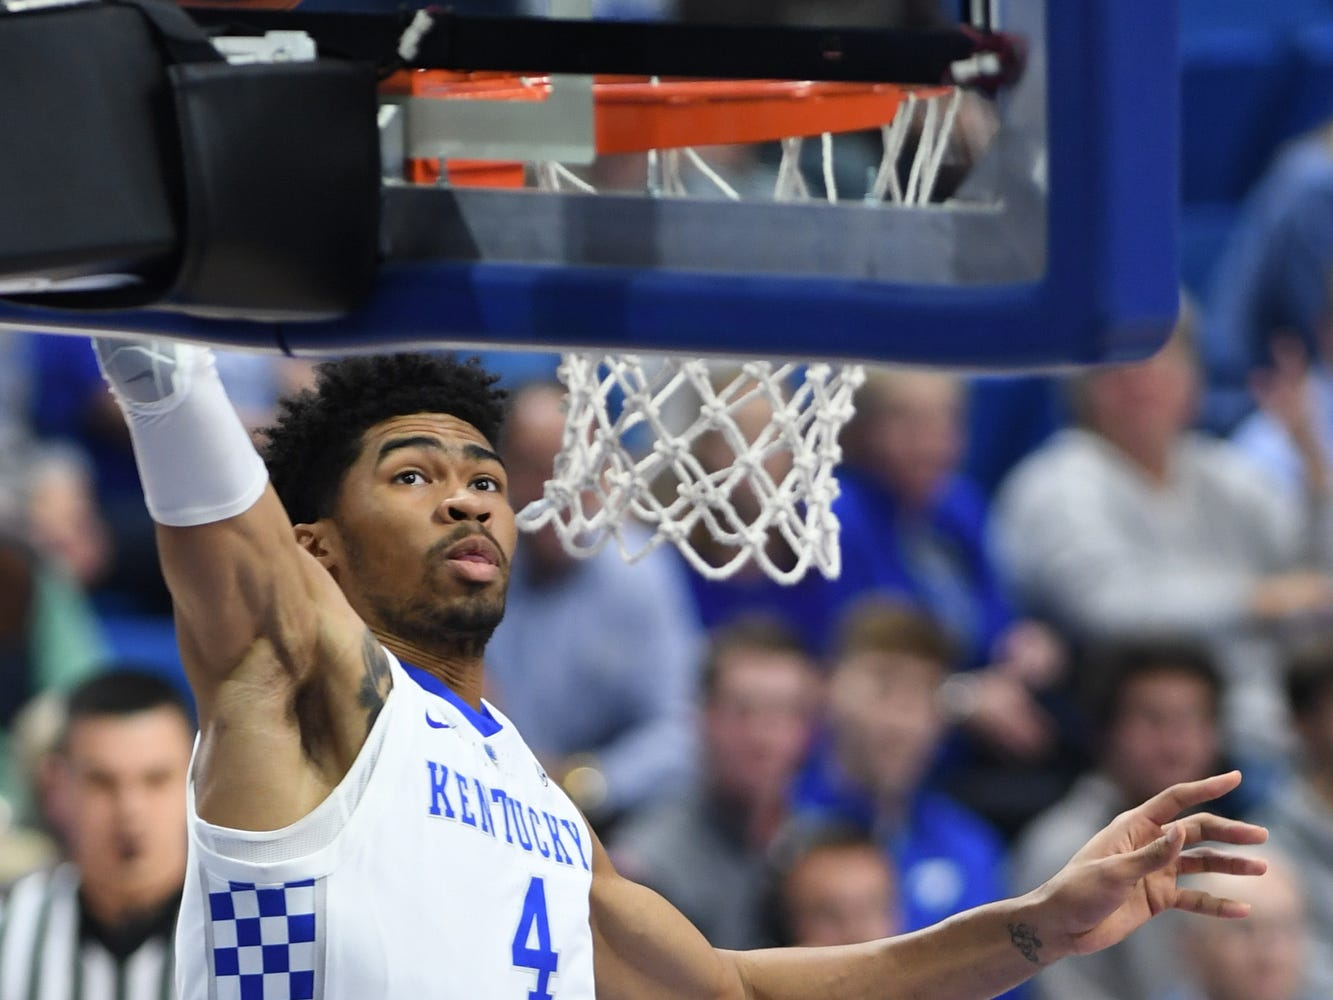 Nick Richards dunks during the University of Kentucky basketball game against Transylvania at Rupp Arena in Lexington on Friday, Oct. 26, 2018.